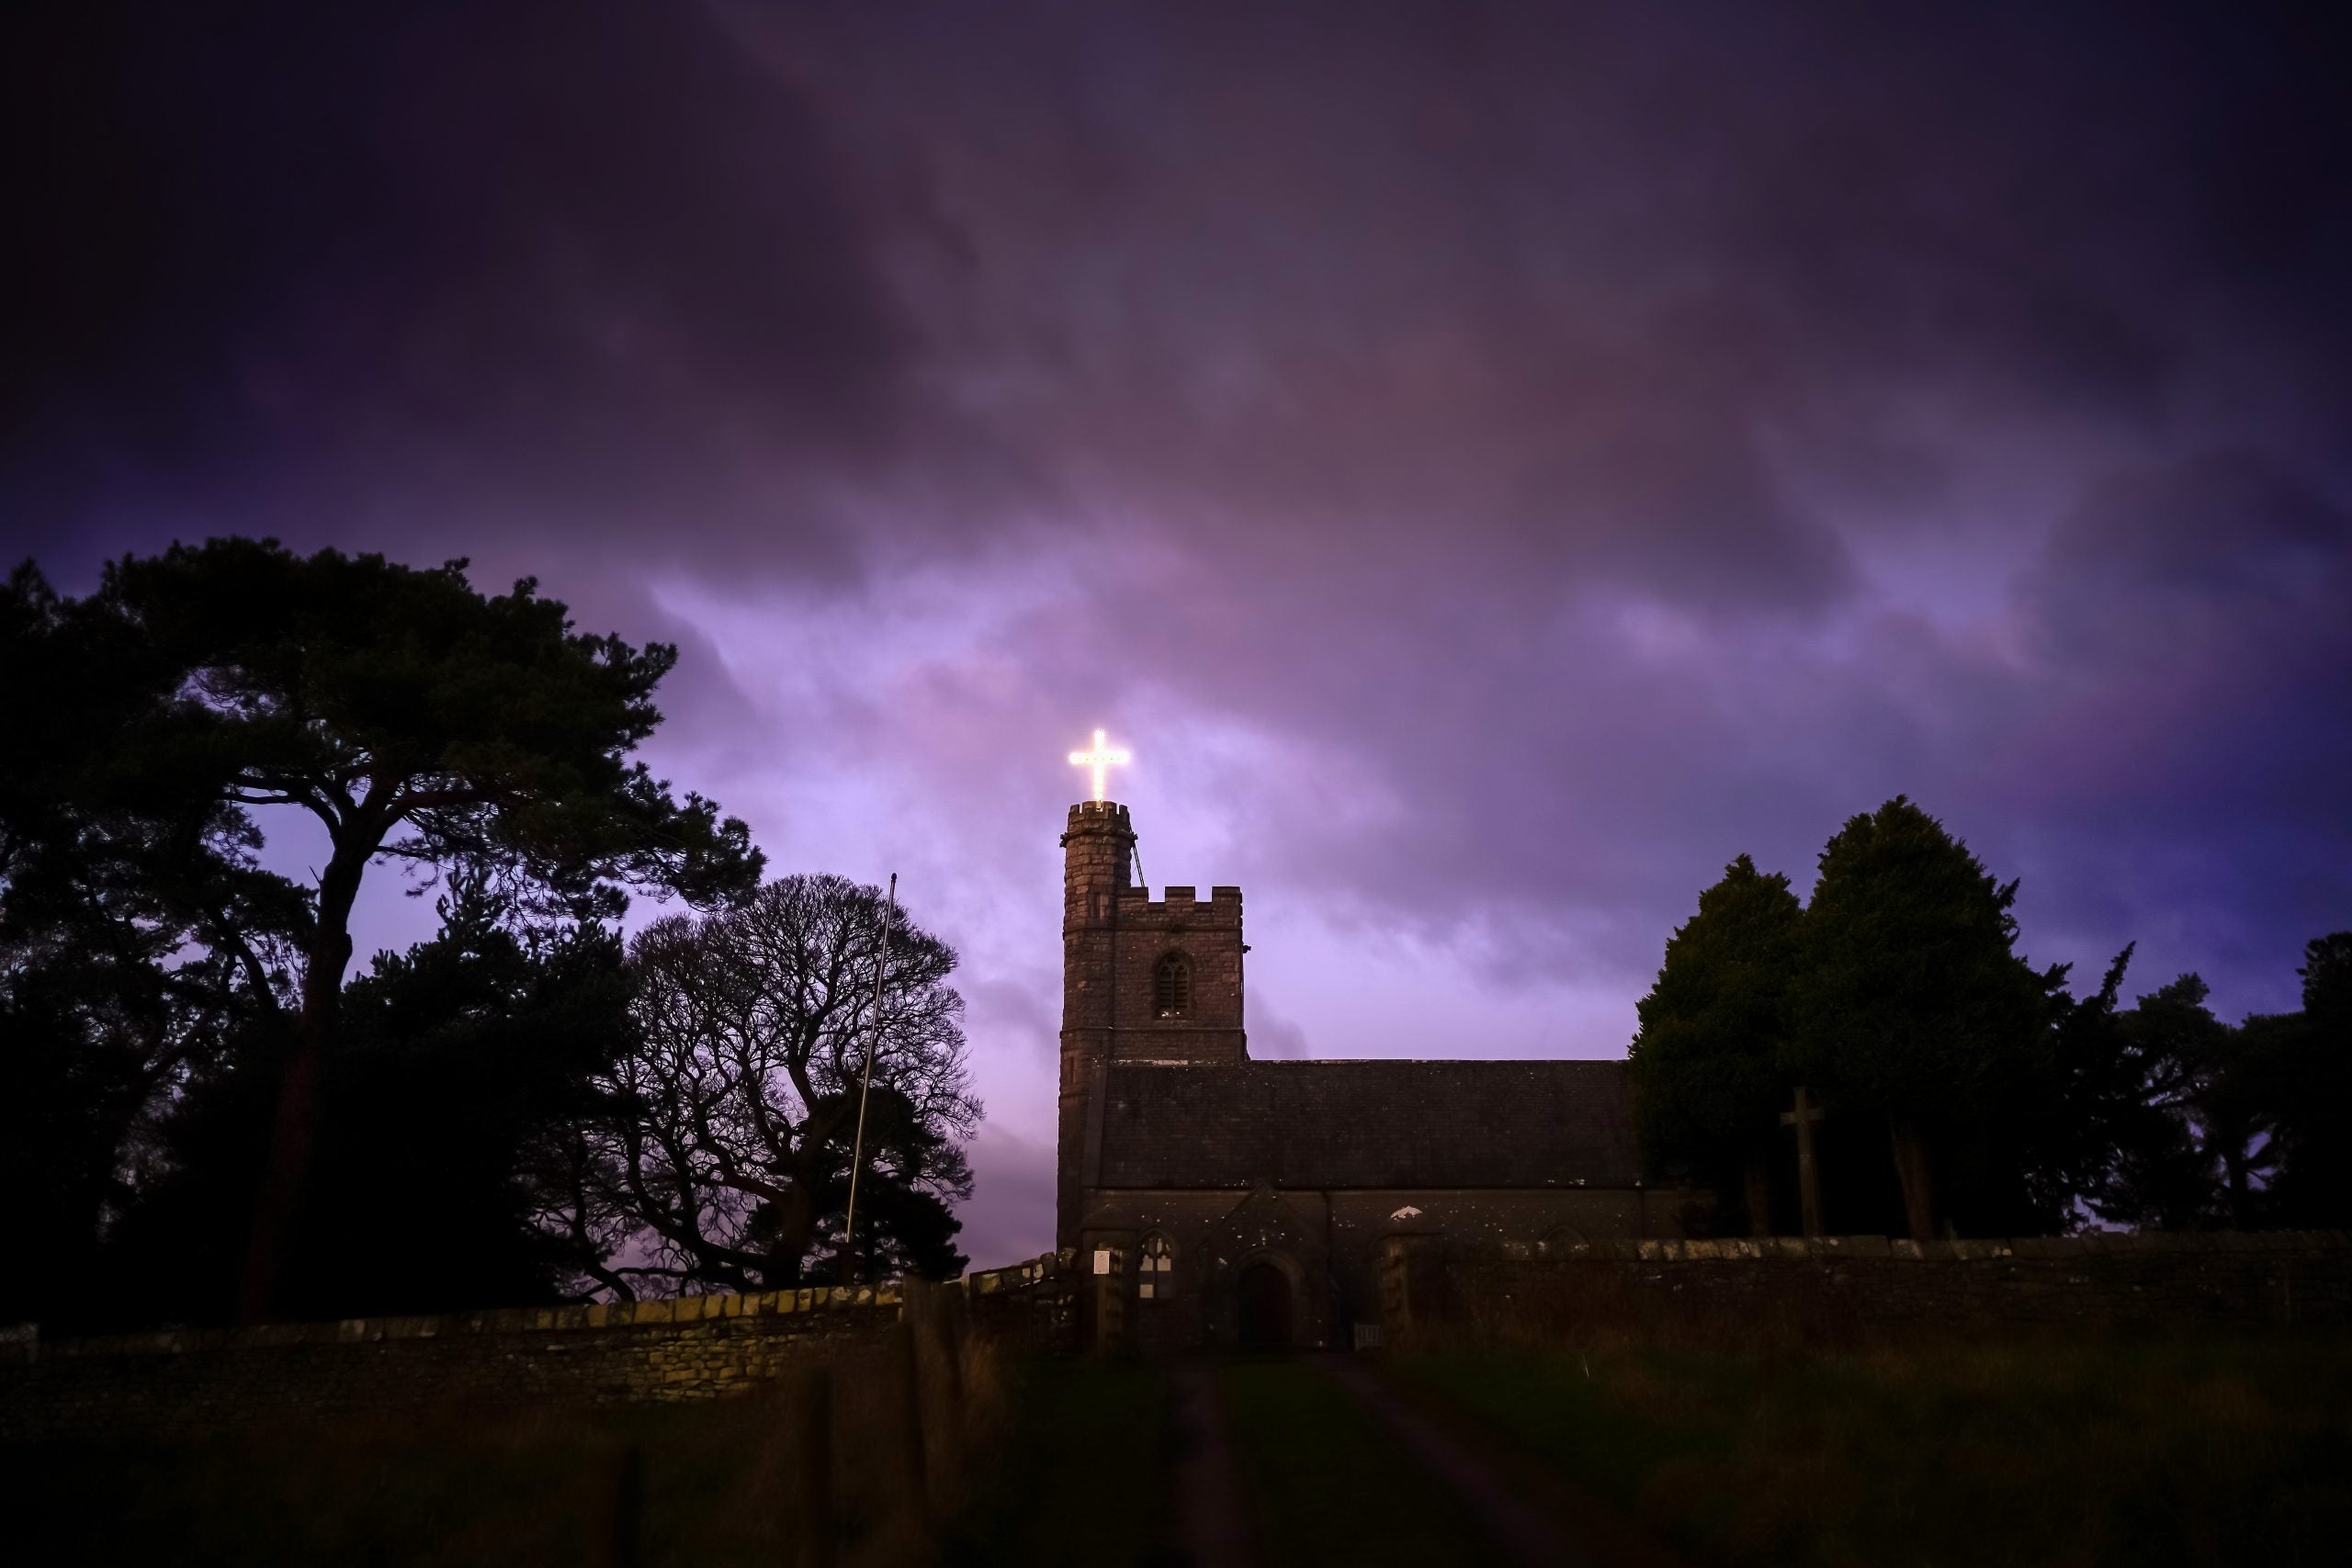 This England: Thief on a hot church roof